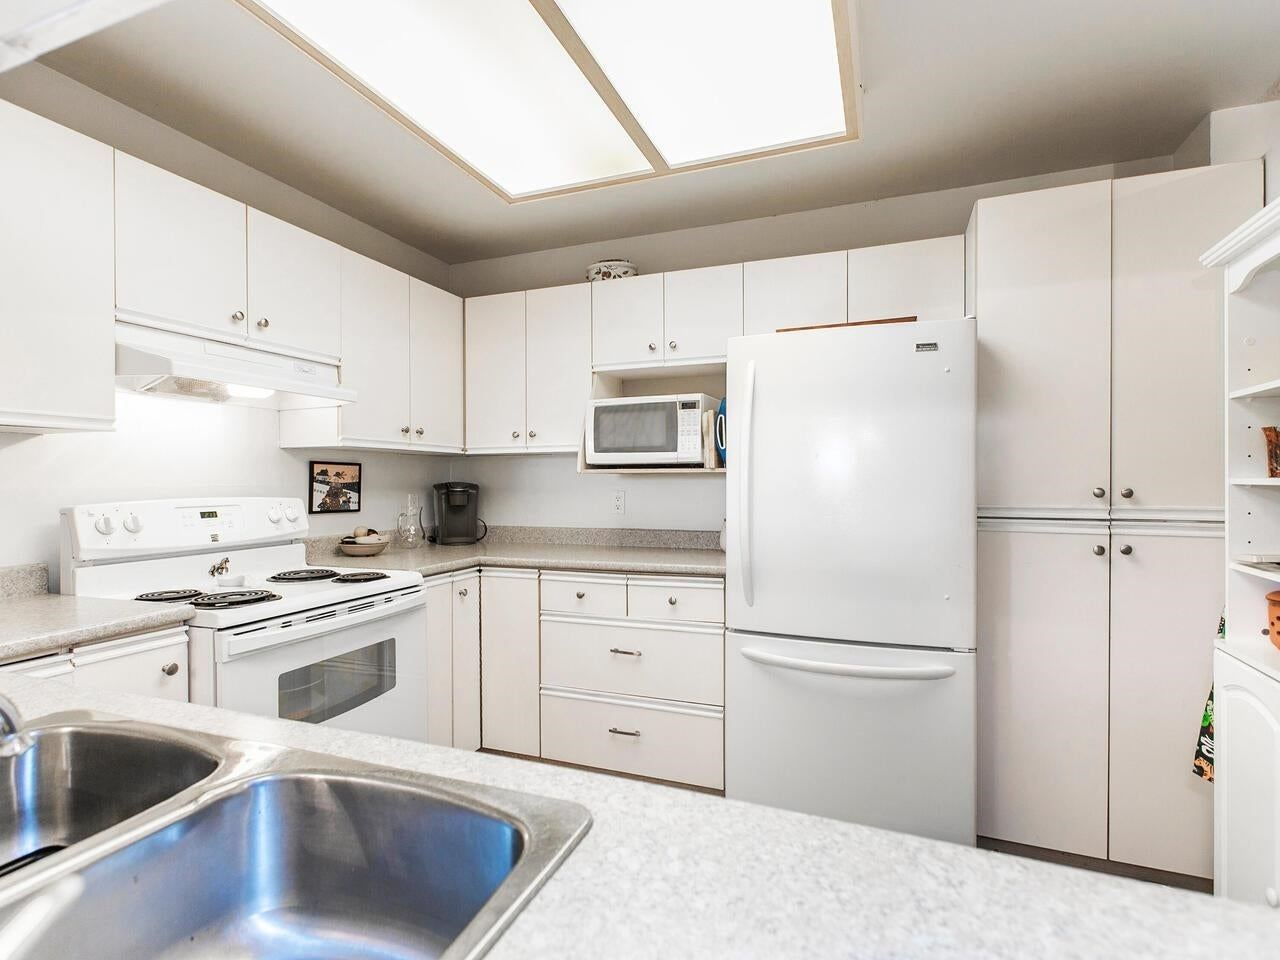 104 2800 CHESTERFIELD AVENUE - Upper Lonsdale Apartment/Condo for sale, 2 Bedrooms (R2603260) - #11